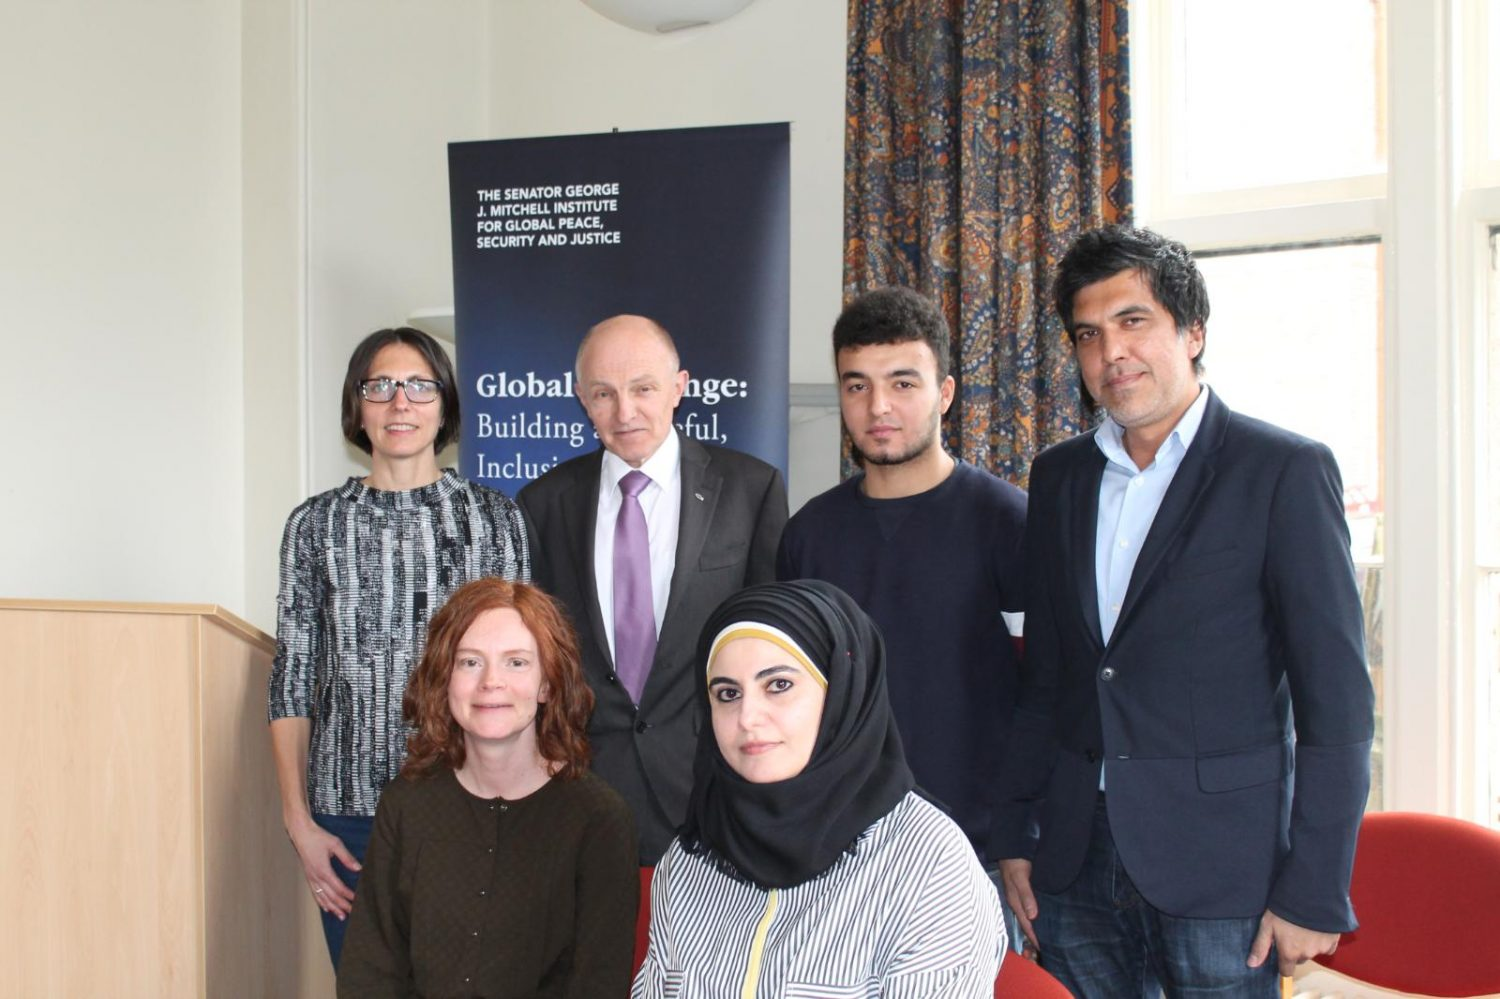 From Religious Illiteracy to Muslim Prayer Rooms – Exploring Religious Freedom in Northern Ireland